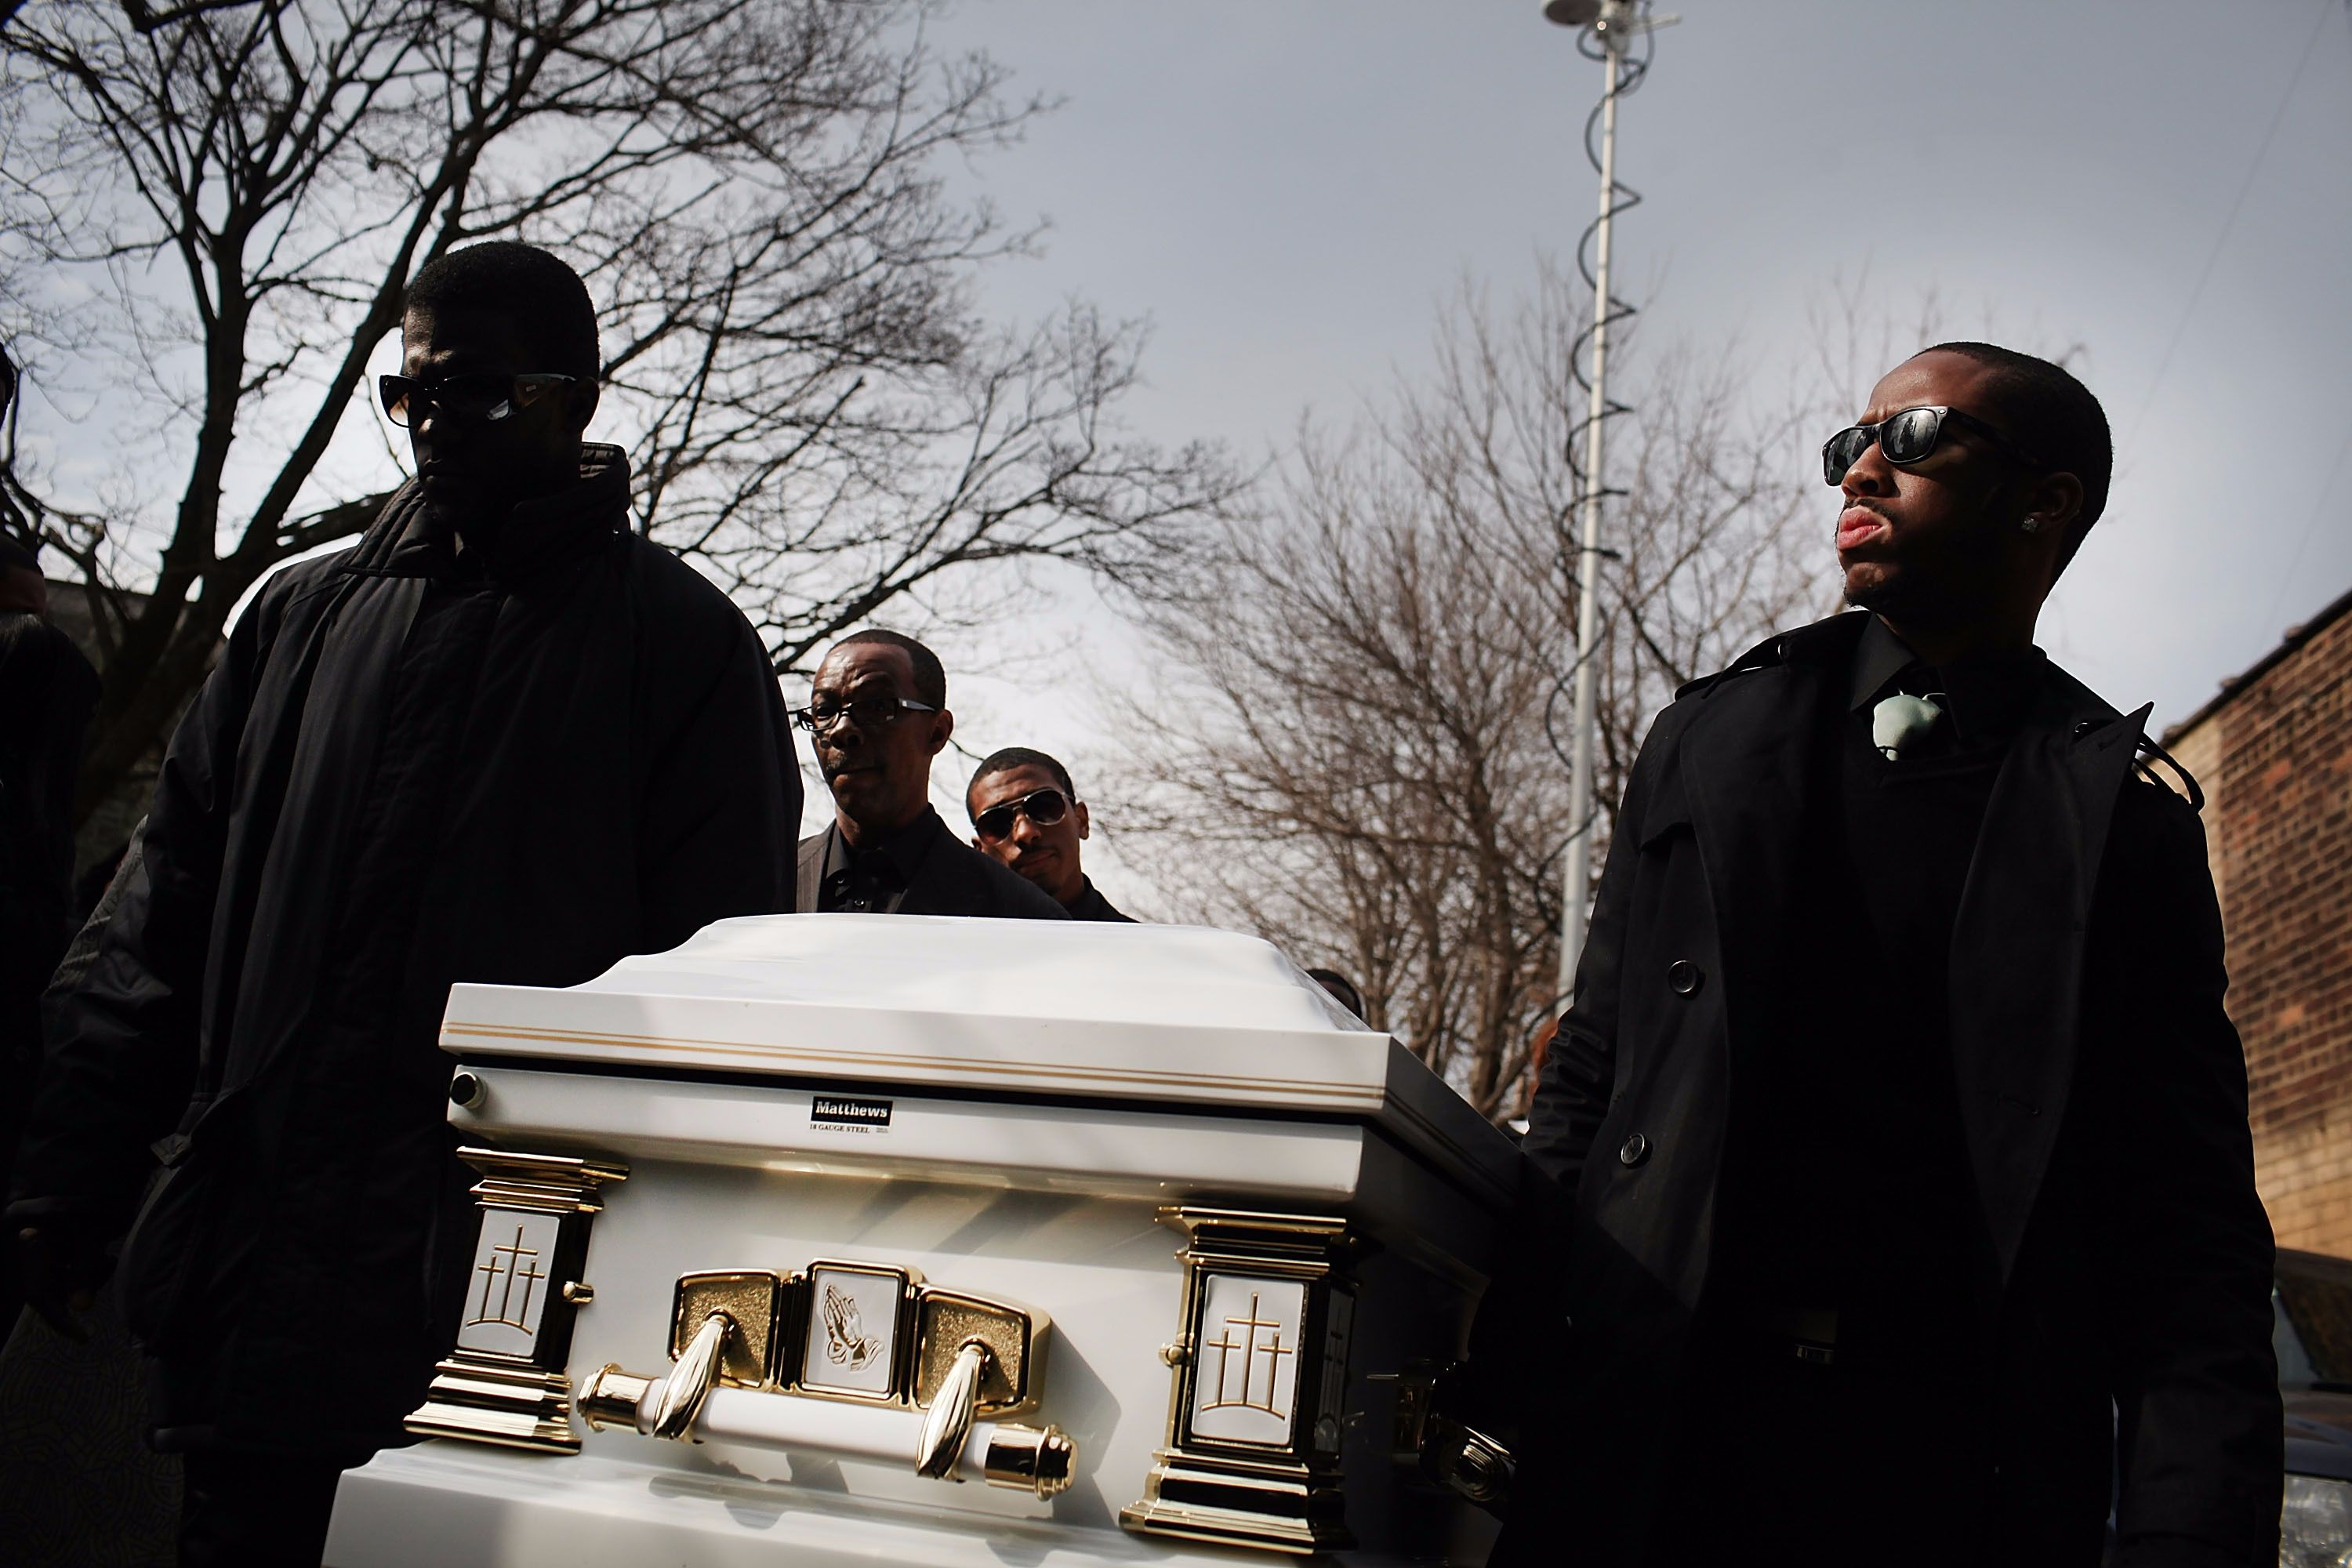 The 2012 funeral of Ramarley Graham.